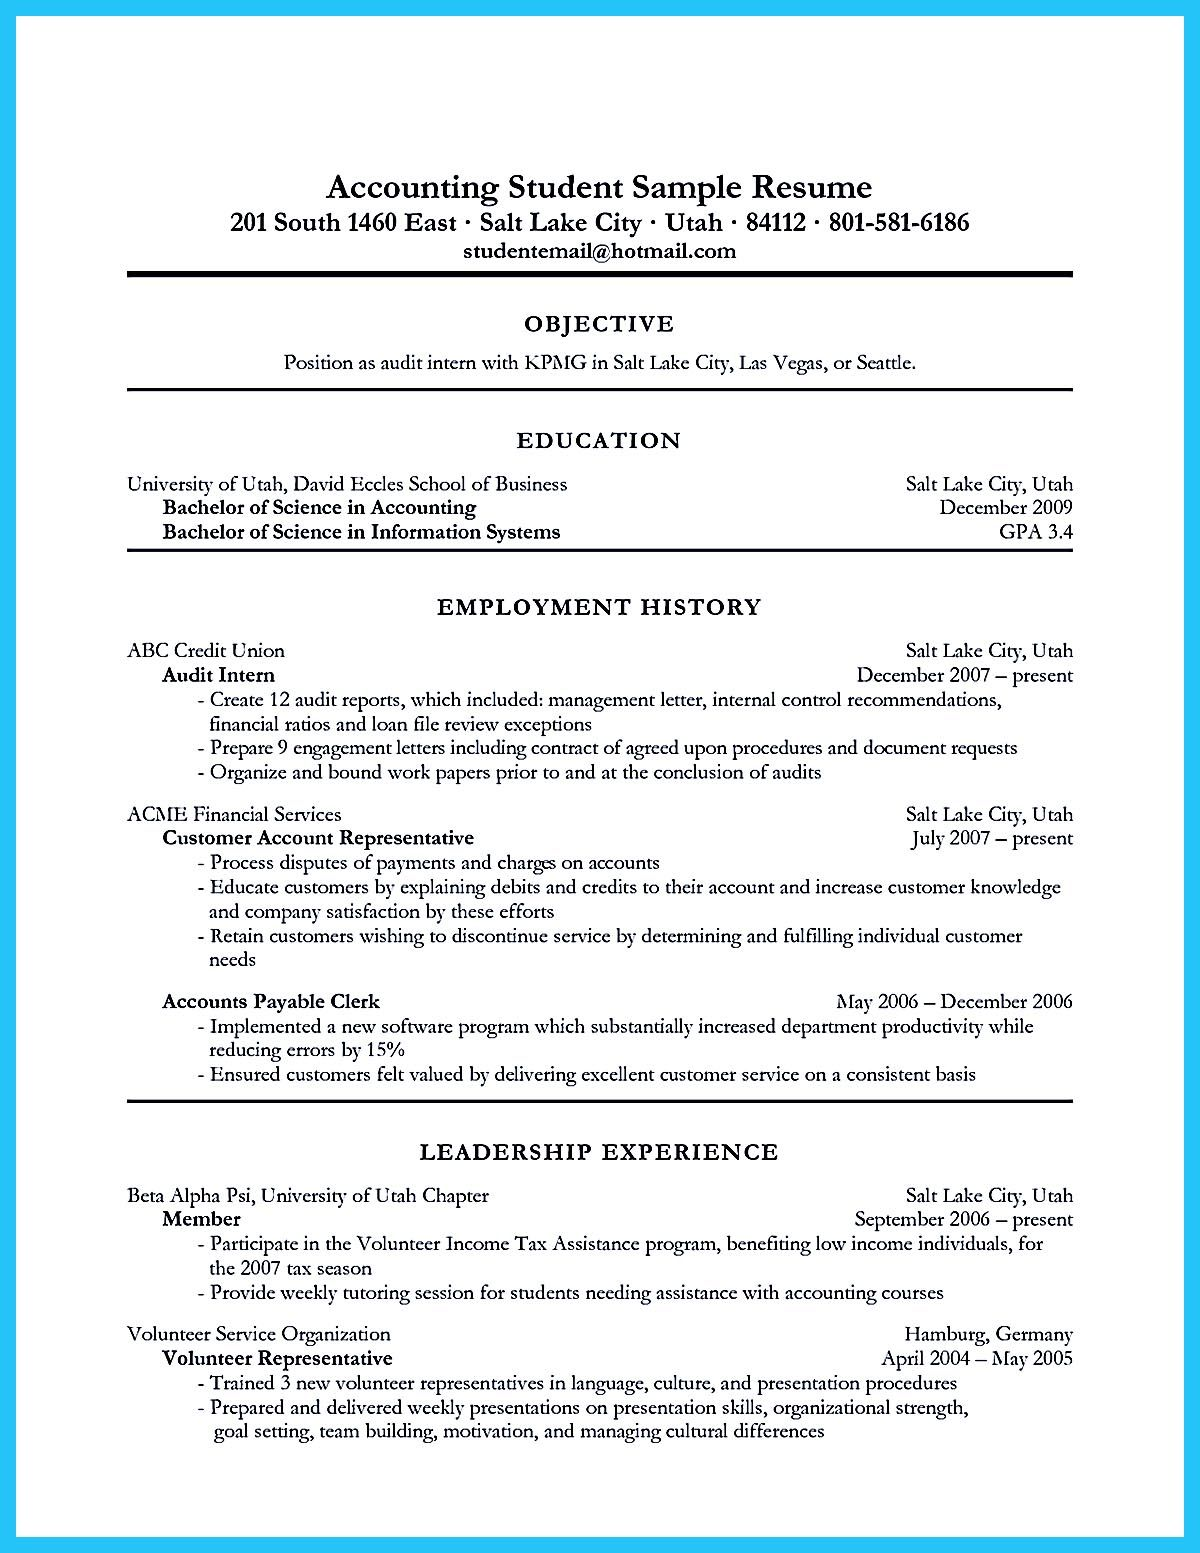 Accounting Student Resume Accounting Student Resume Here Presents How The Resume Of